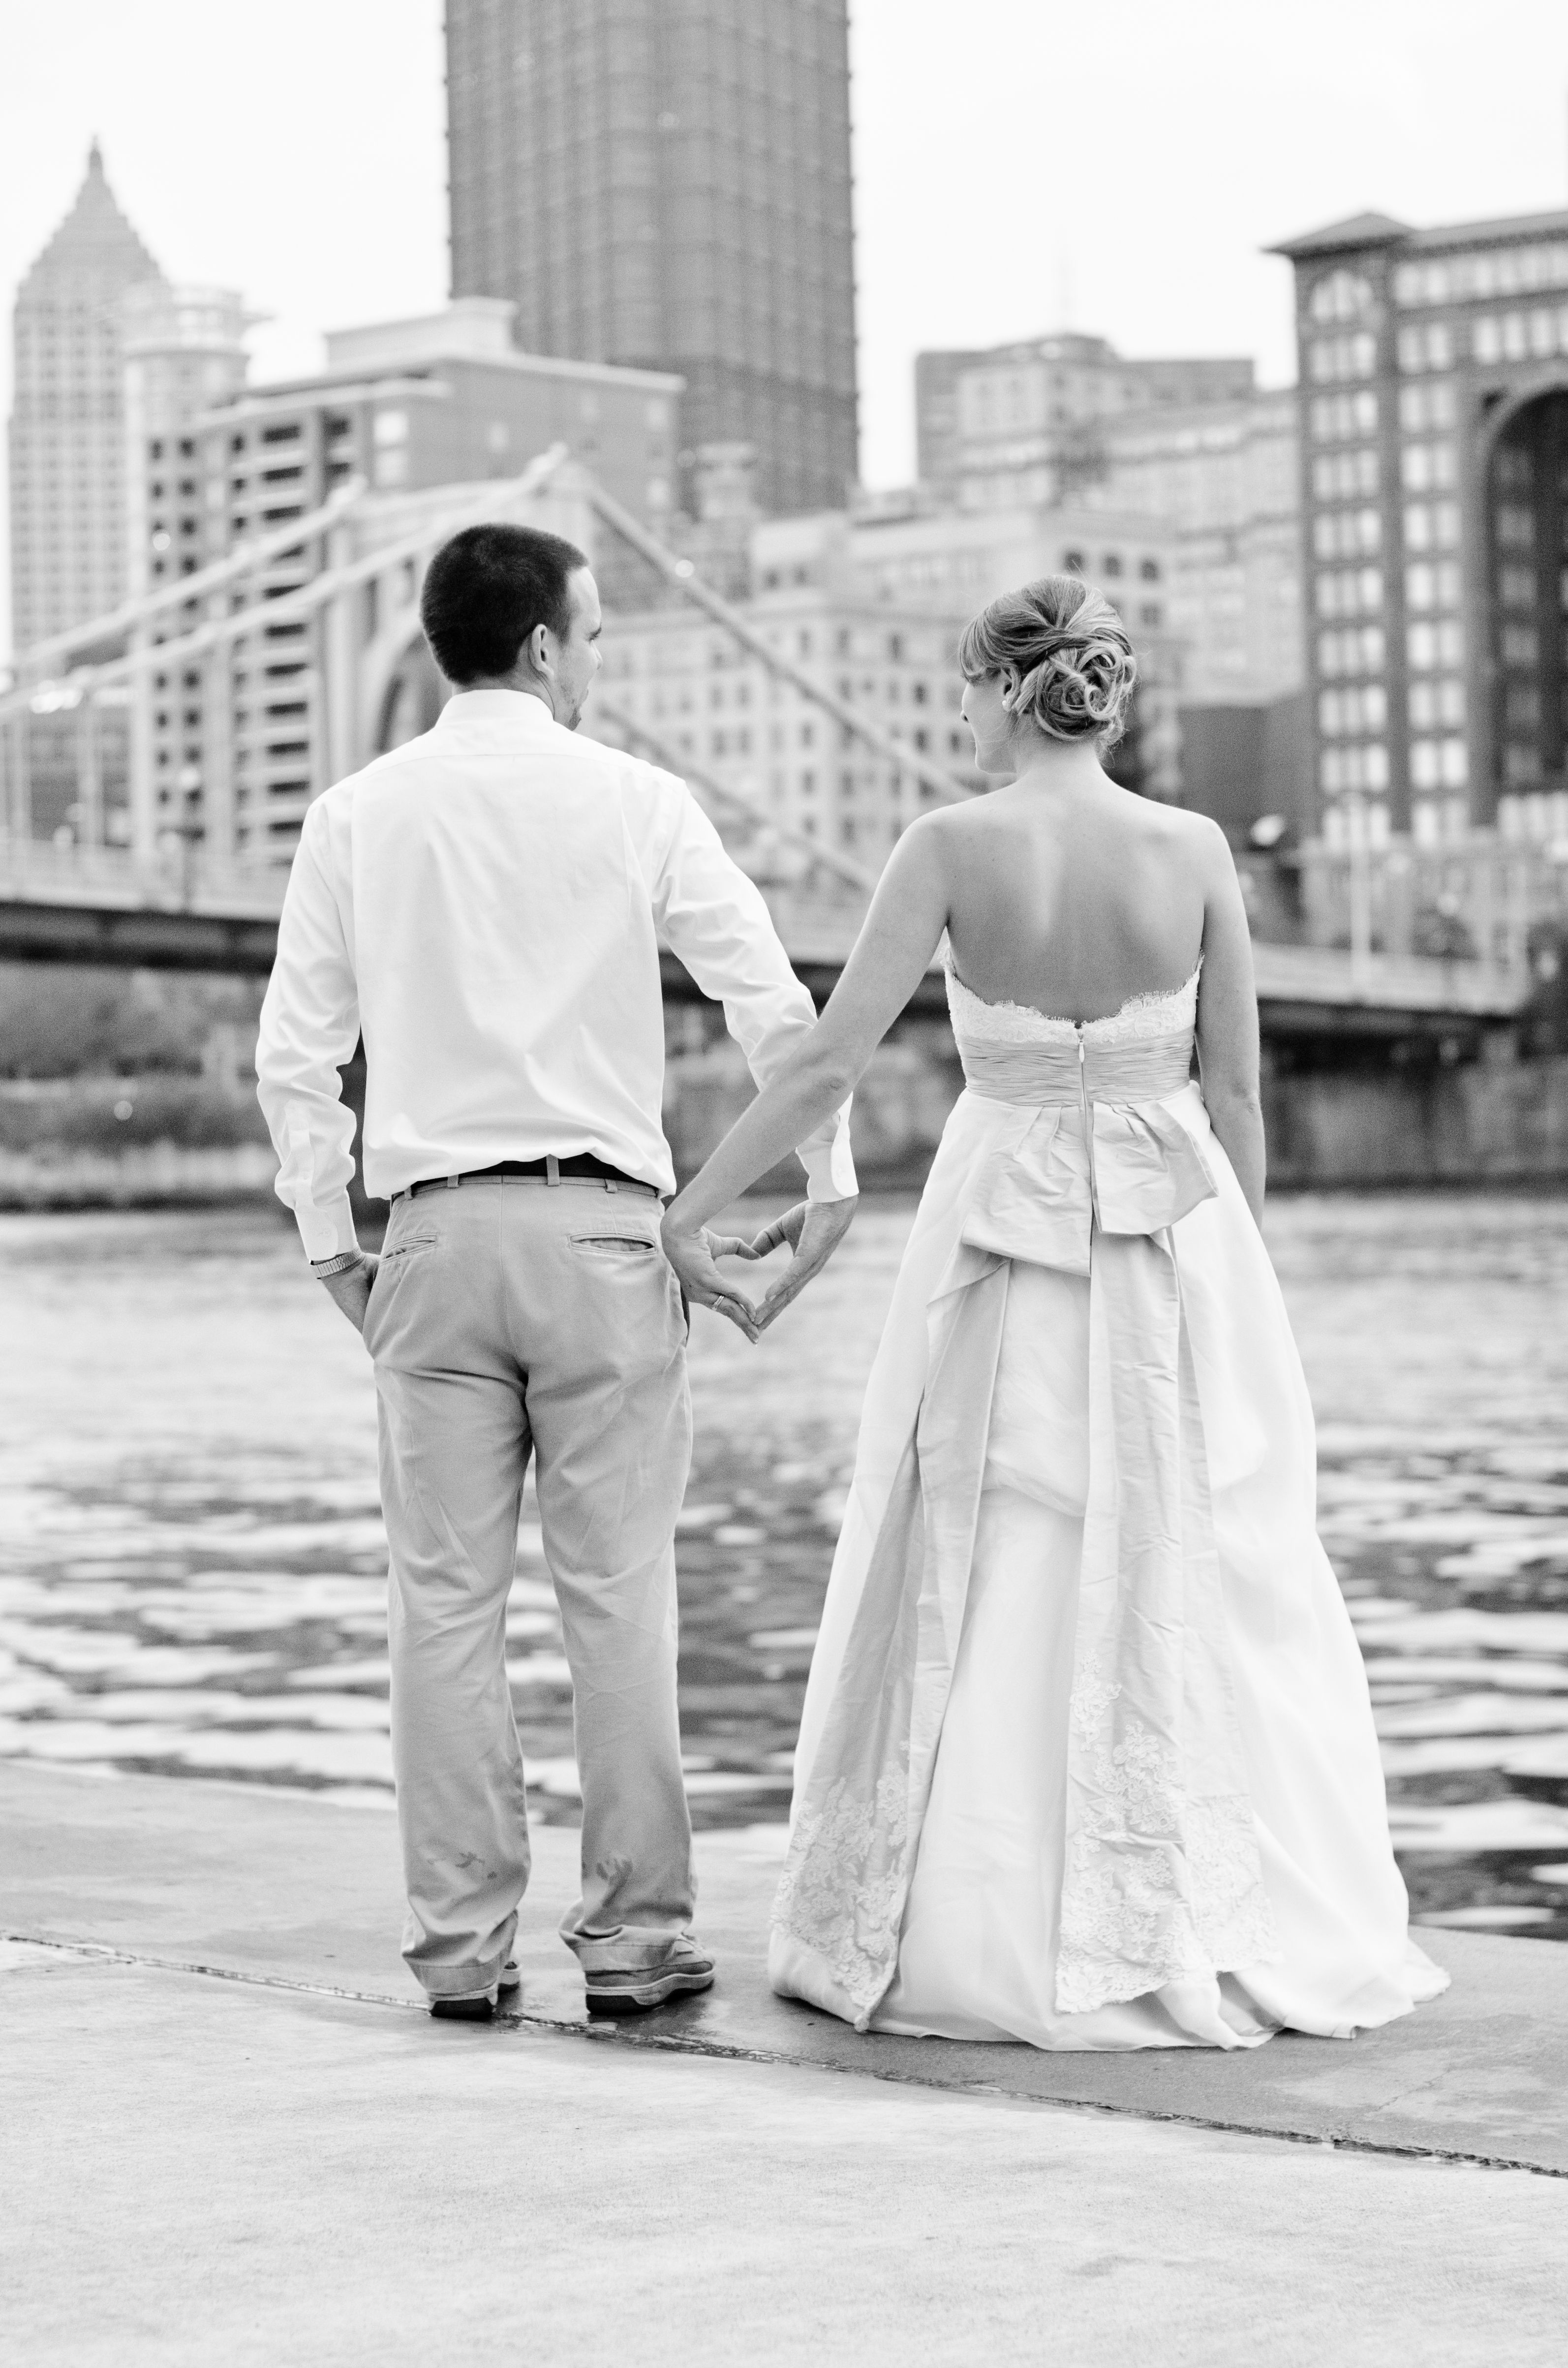 Pittsburgh Wedding Encore Rock The Dress Heart Hands Bridge Photo Session By Sewickley Photography Www Sewickleyph Pittsburgh Weddings Wedding Facility Wedding